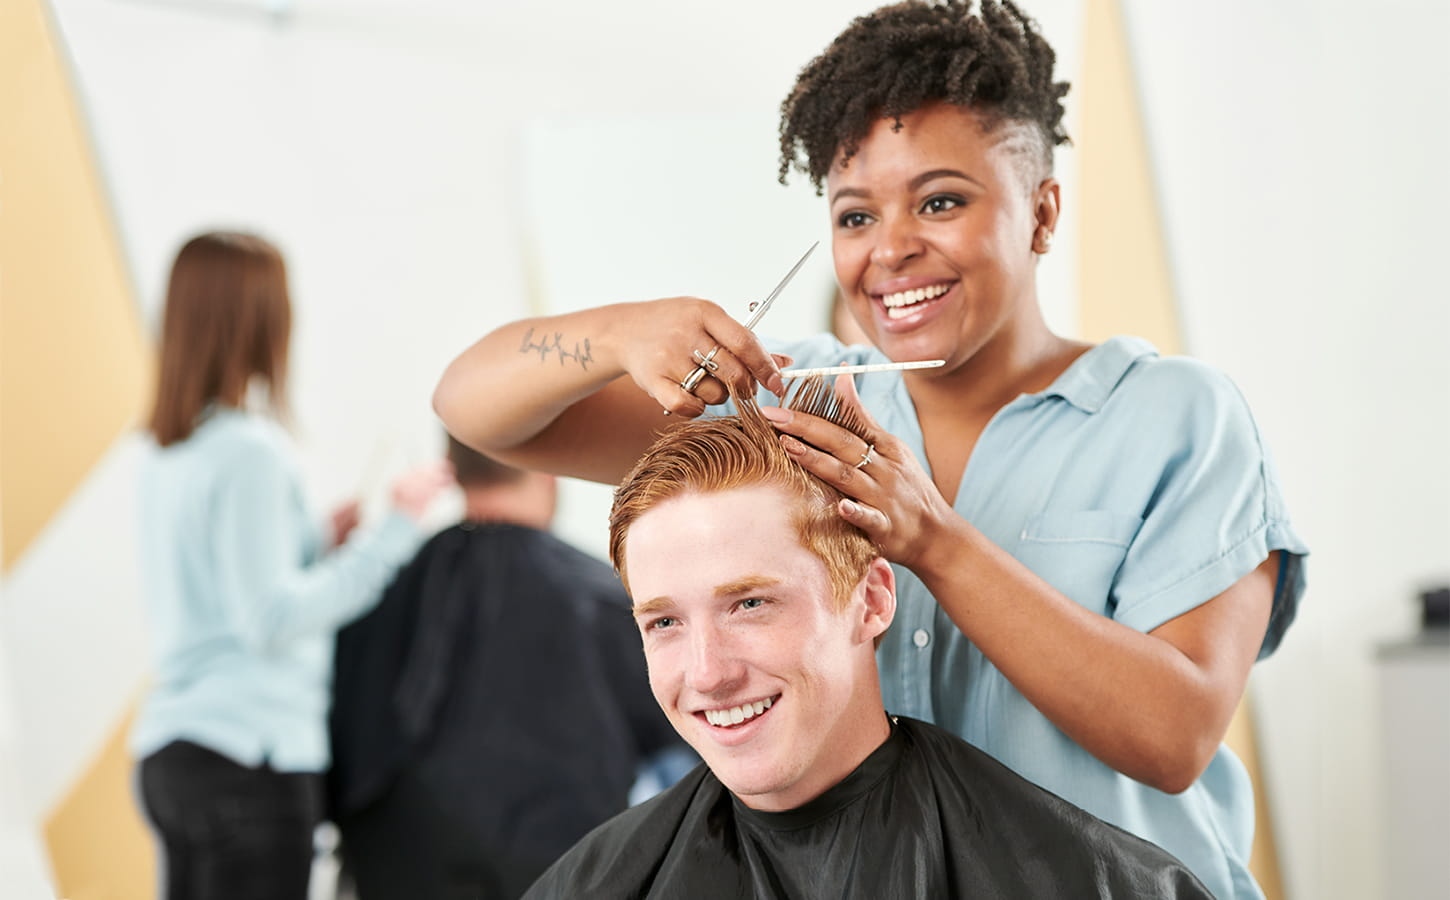 Salon Senior Haircuts For Men Women Kids Great Clips Hair Salons